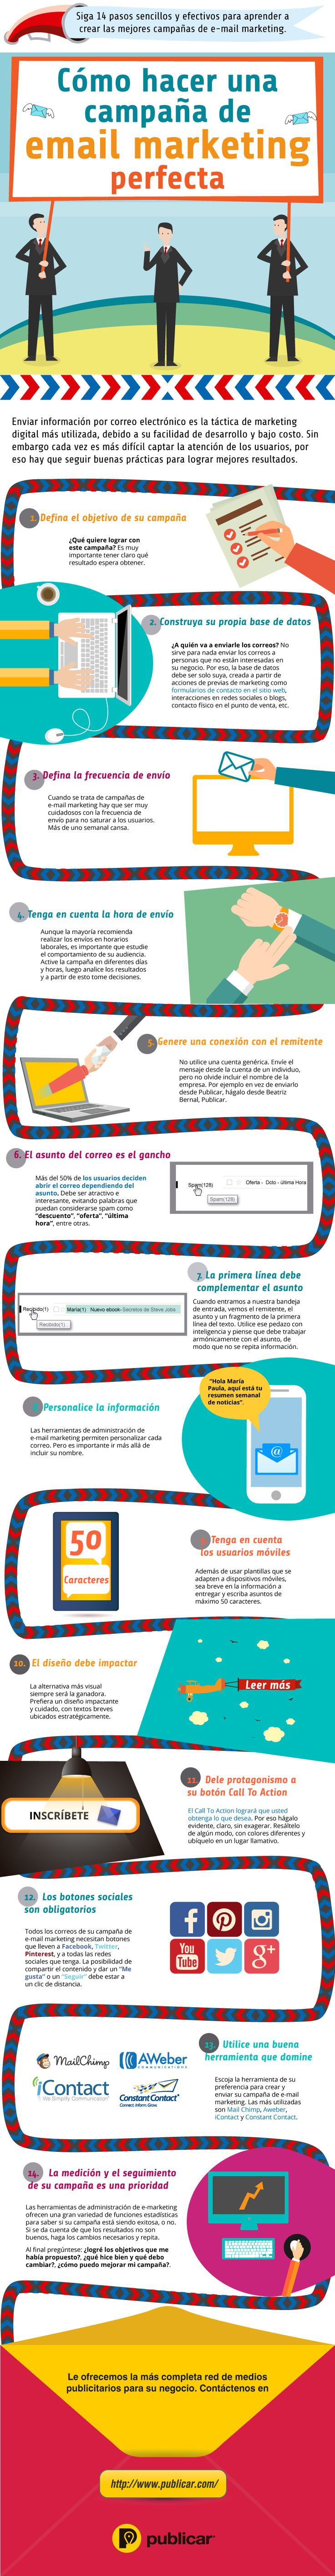 CÓMO HACER UNA CAMPAÑA DE EMAIL MARKETING PERFECTA #INFOGRAFIA #INFOGRAPHIC #MARKETING